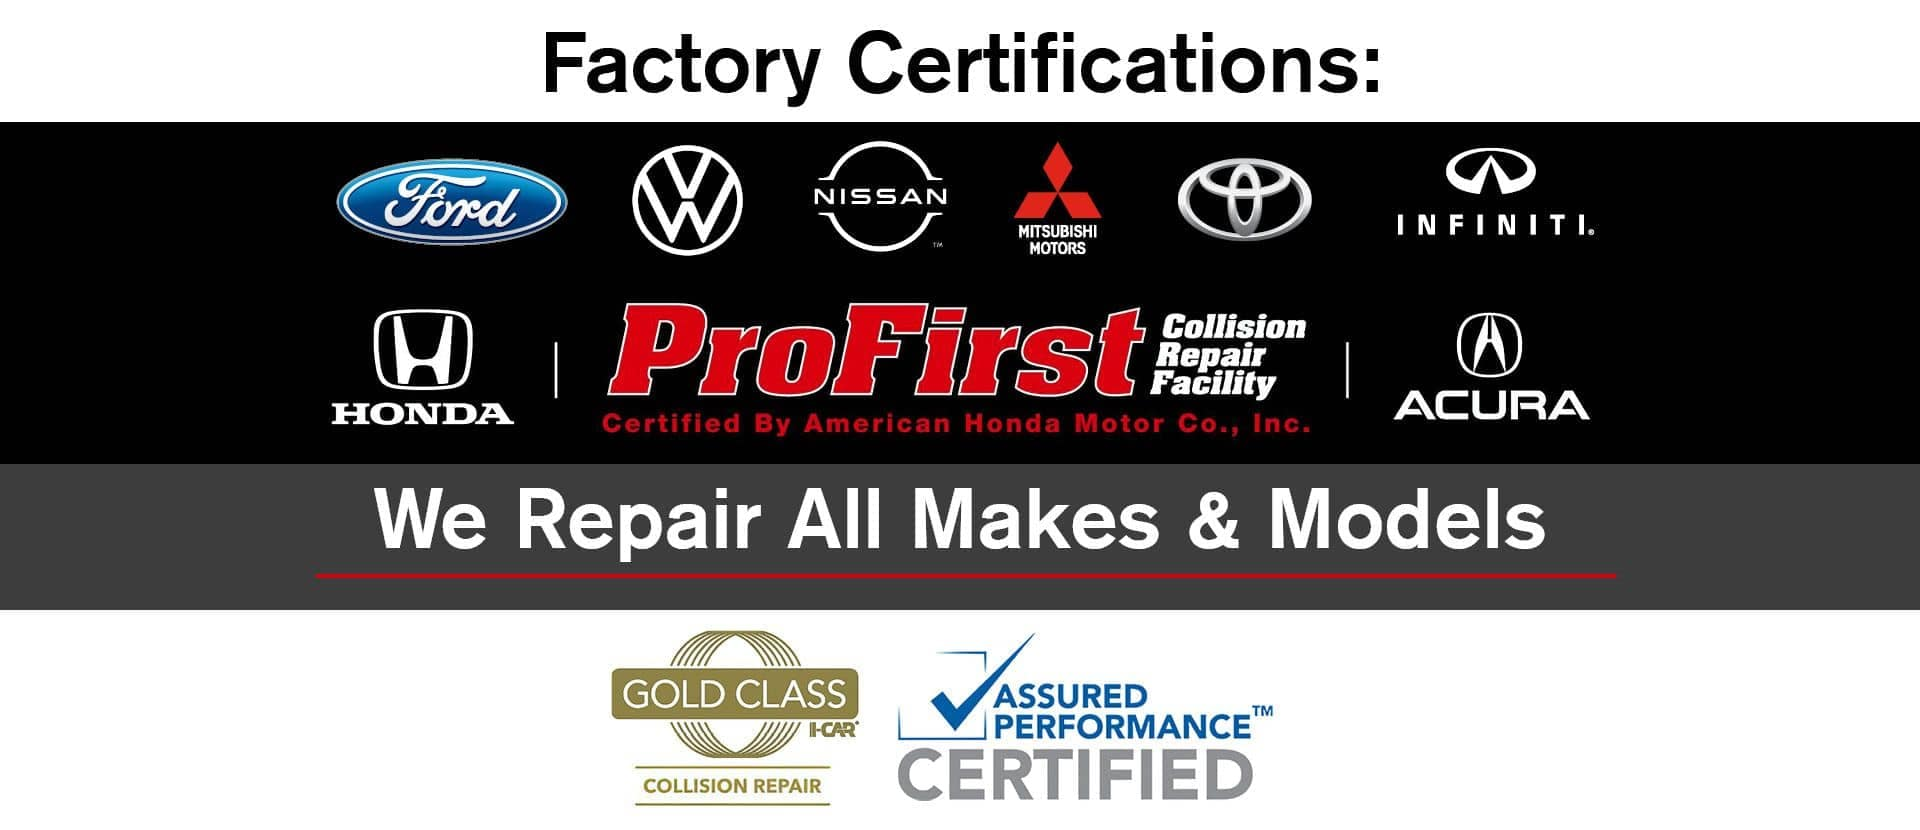 Mossy Factory Certifications